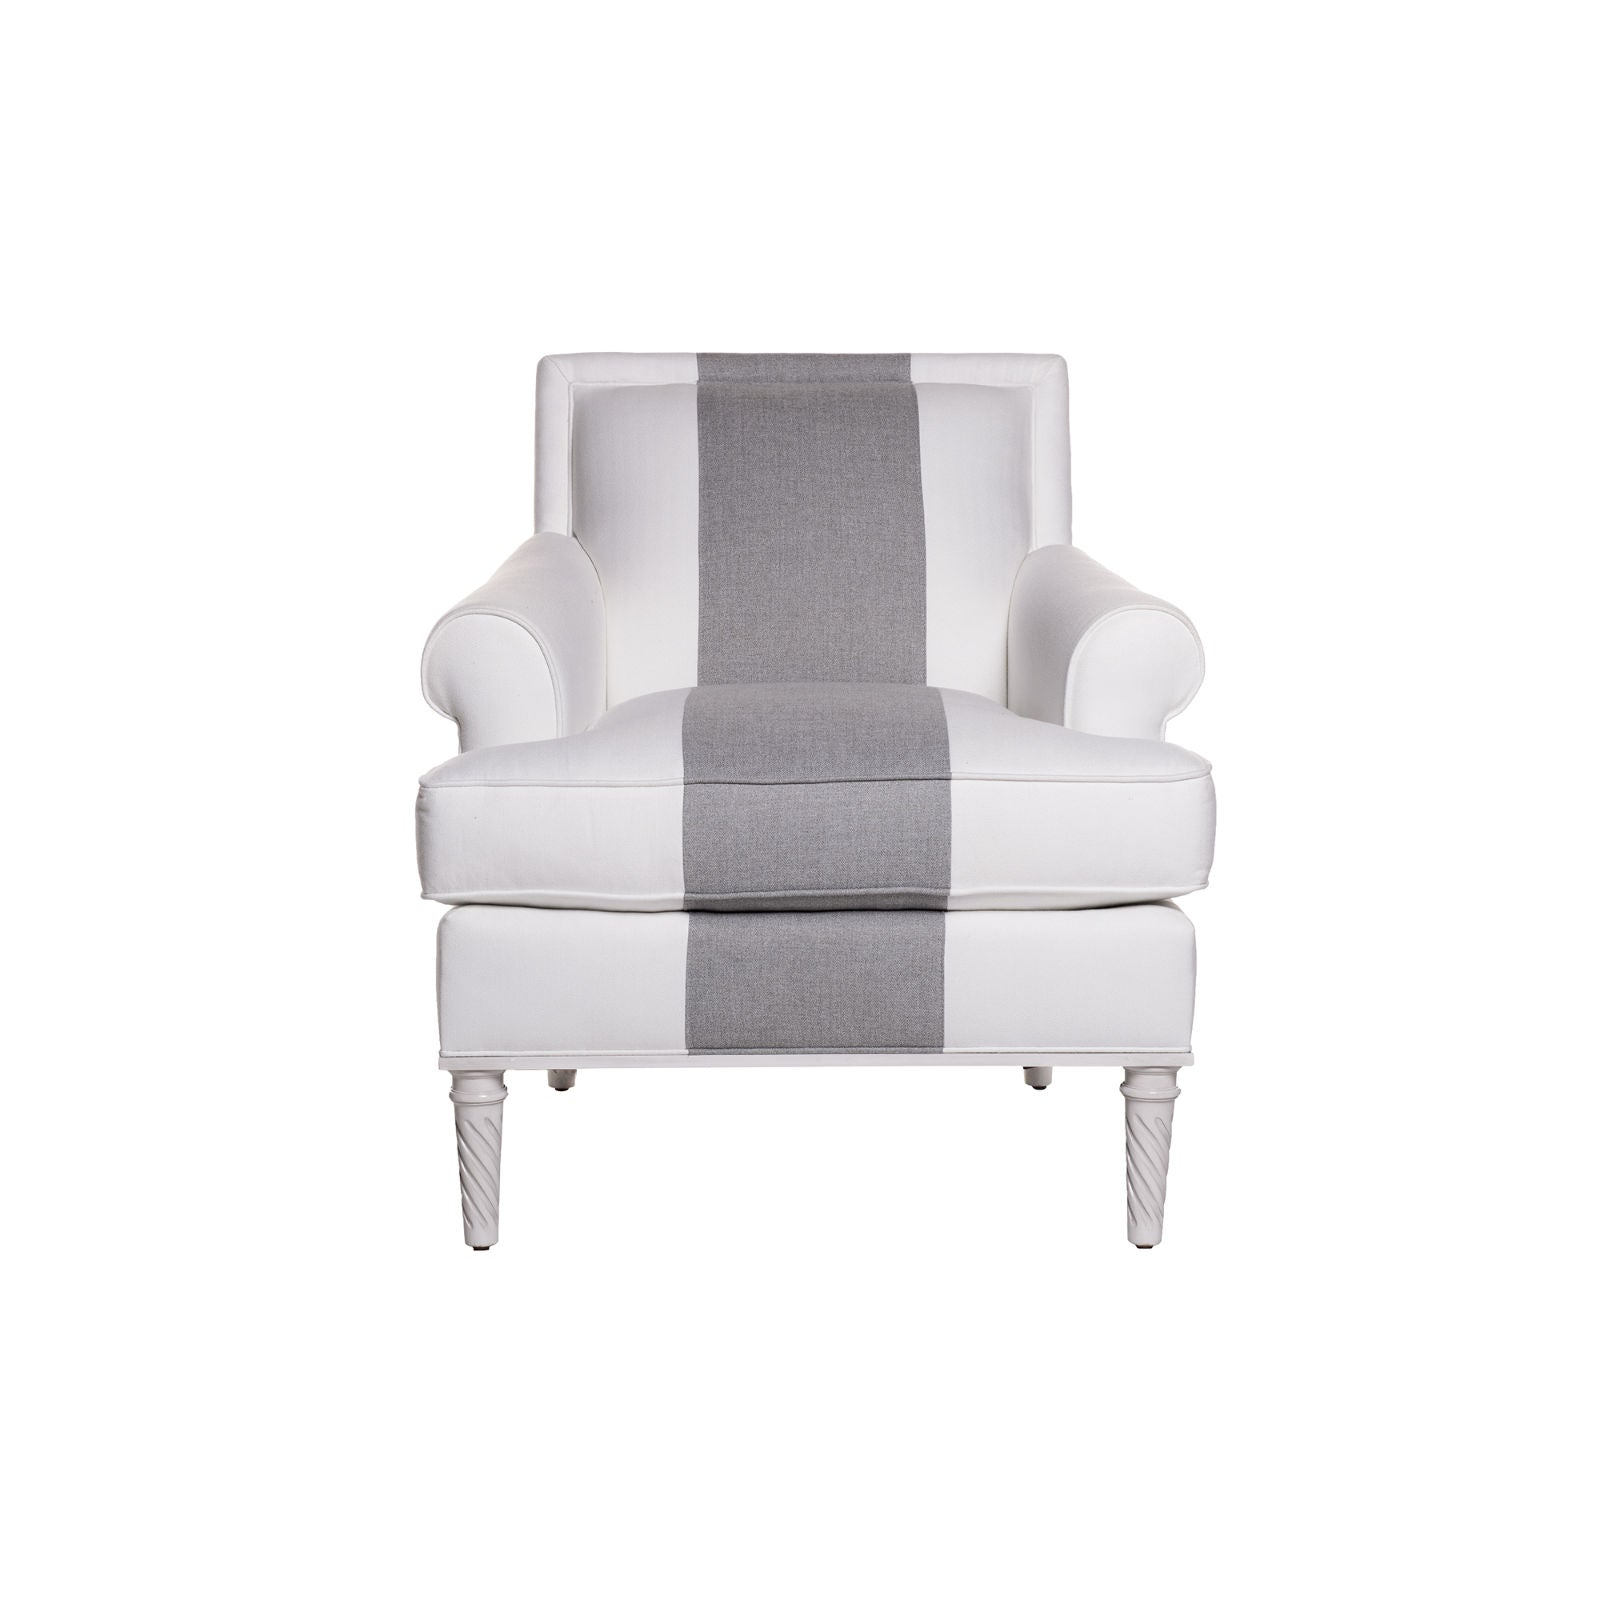 Swell Dorset Stripe Chair Brooke Lou Squirreltailoven Fun Painted Chair Ideas Images Squirreltailovenorg